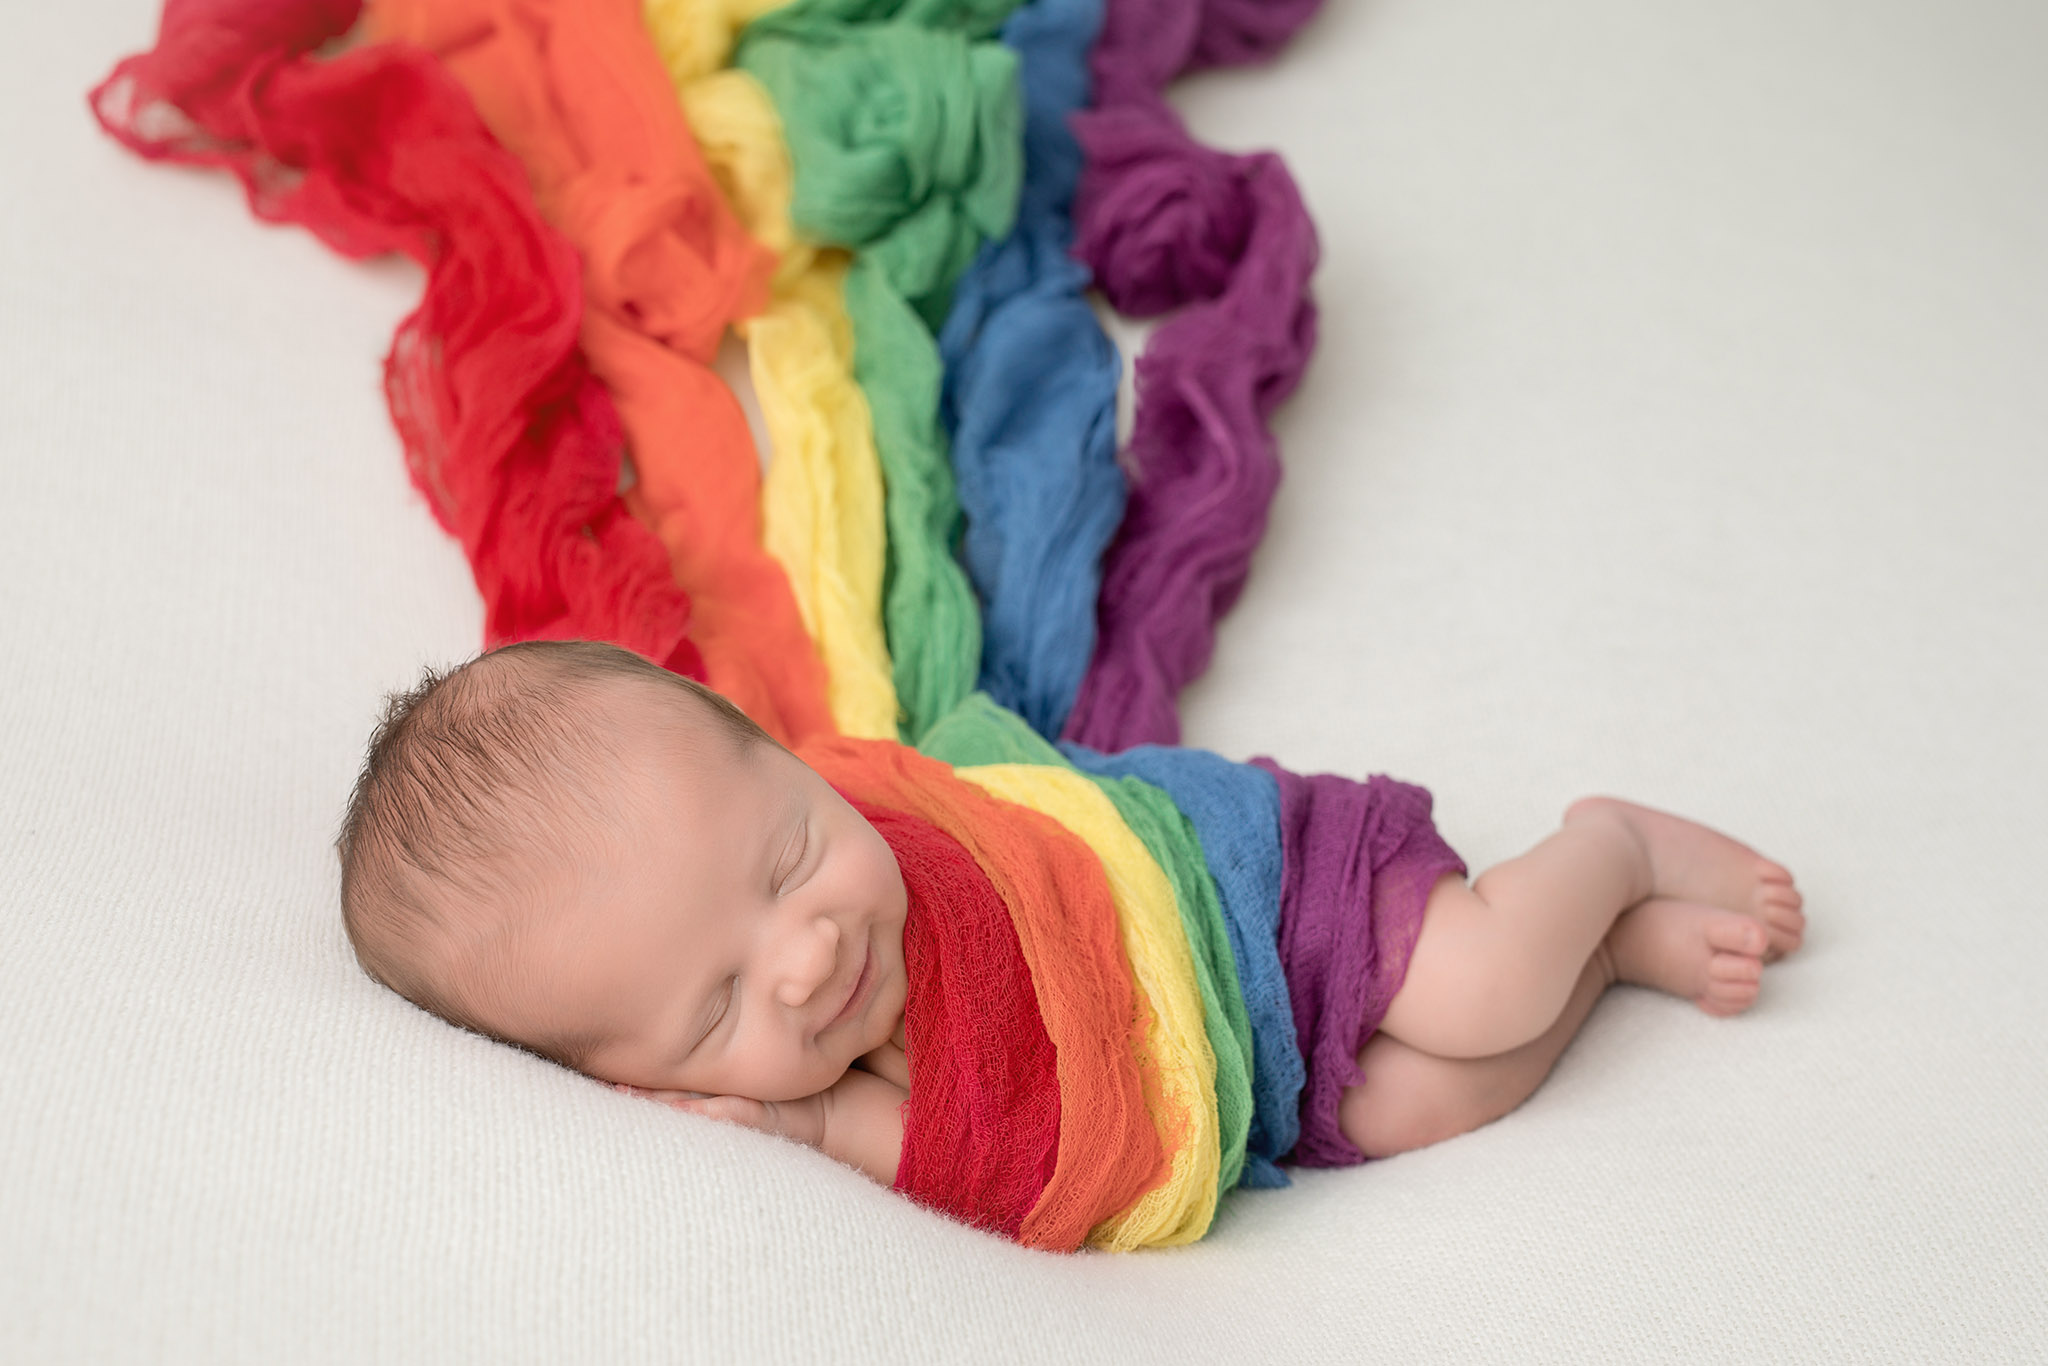 Rainbow baby in primary colors